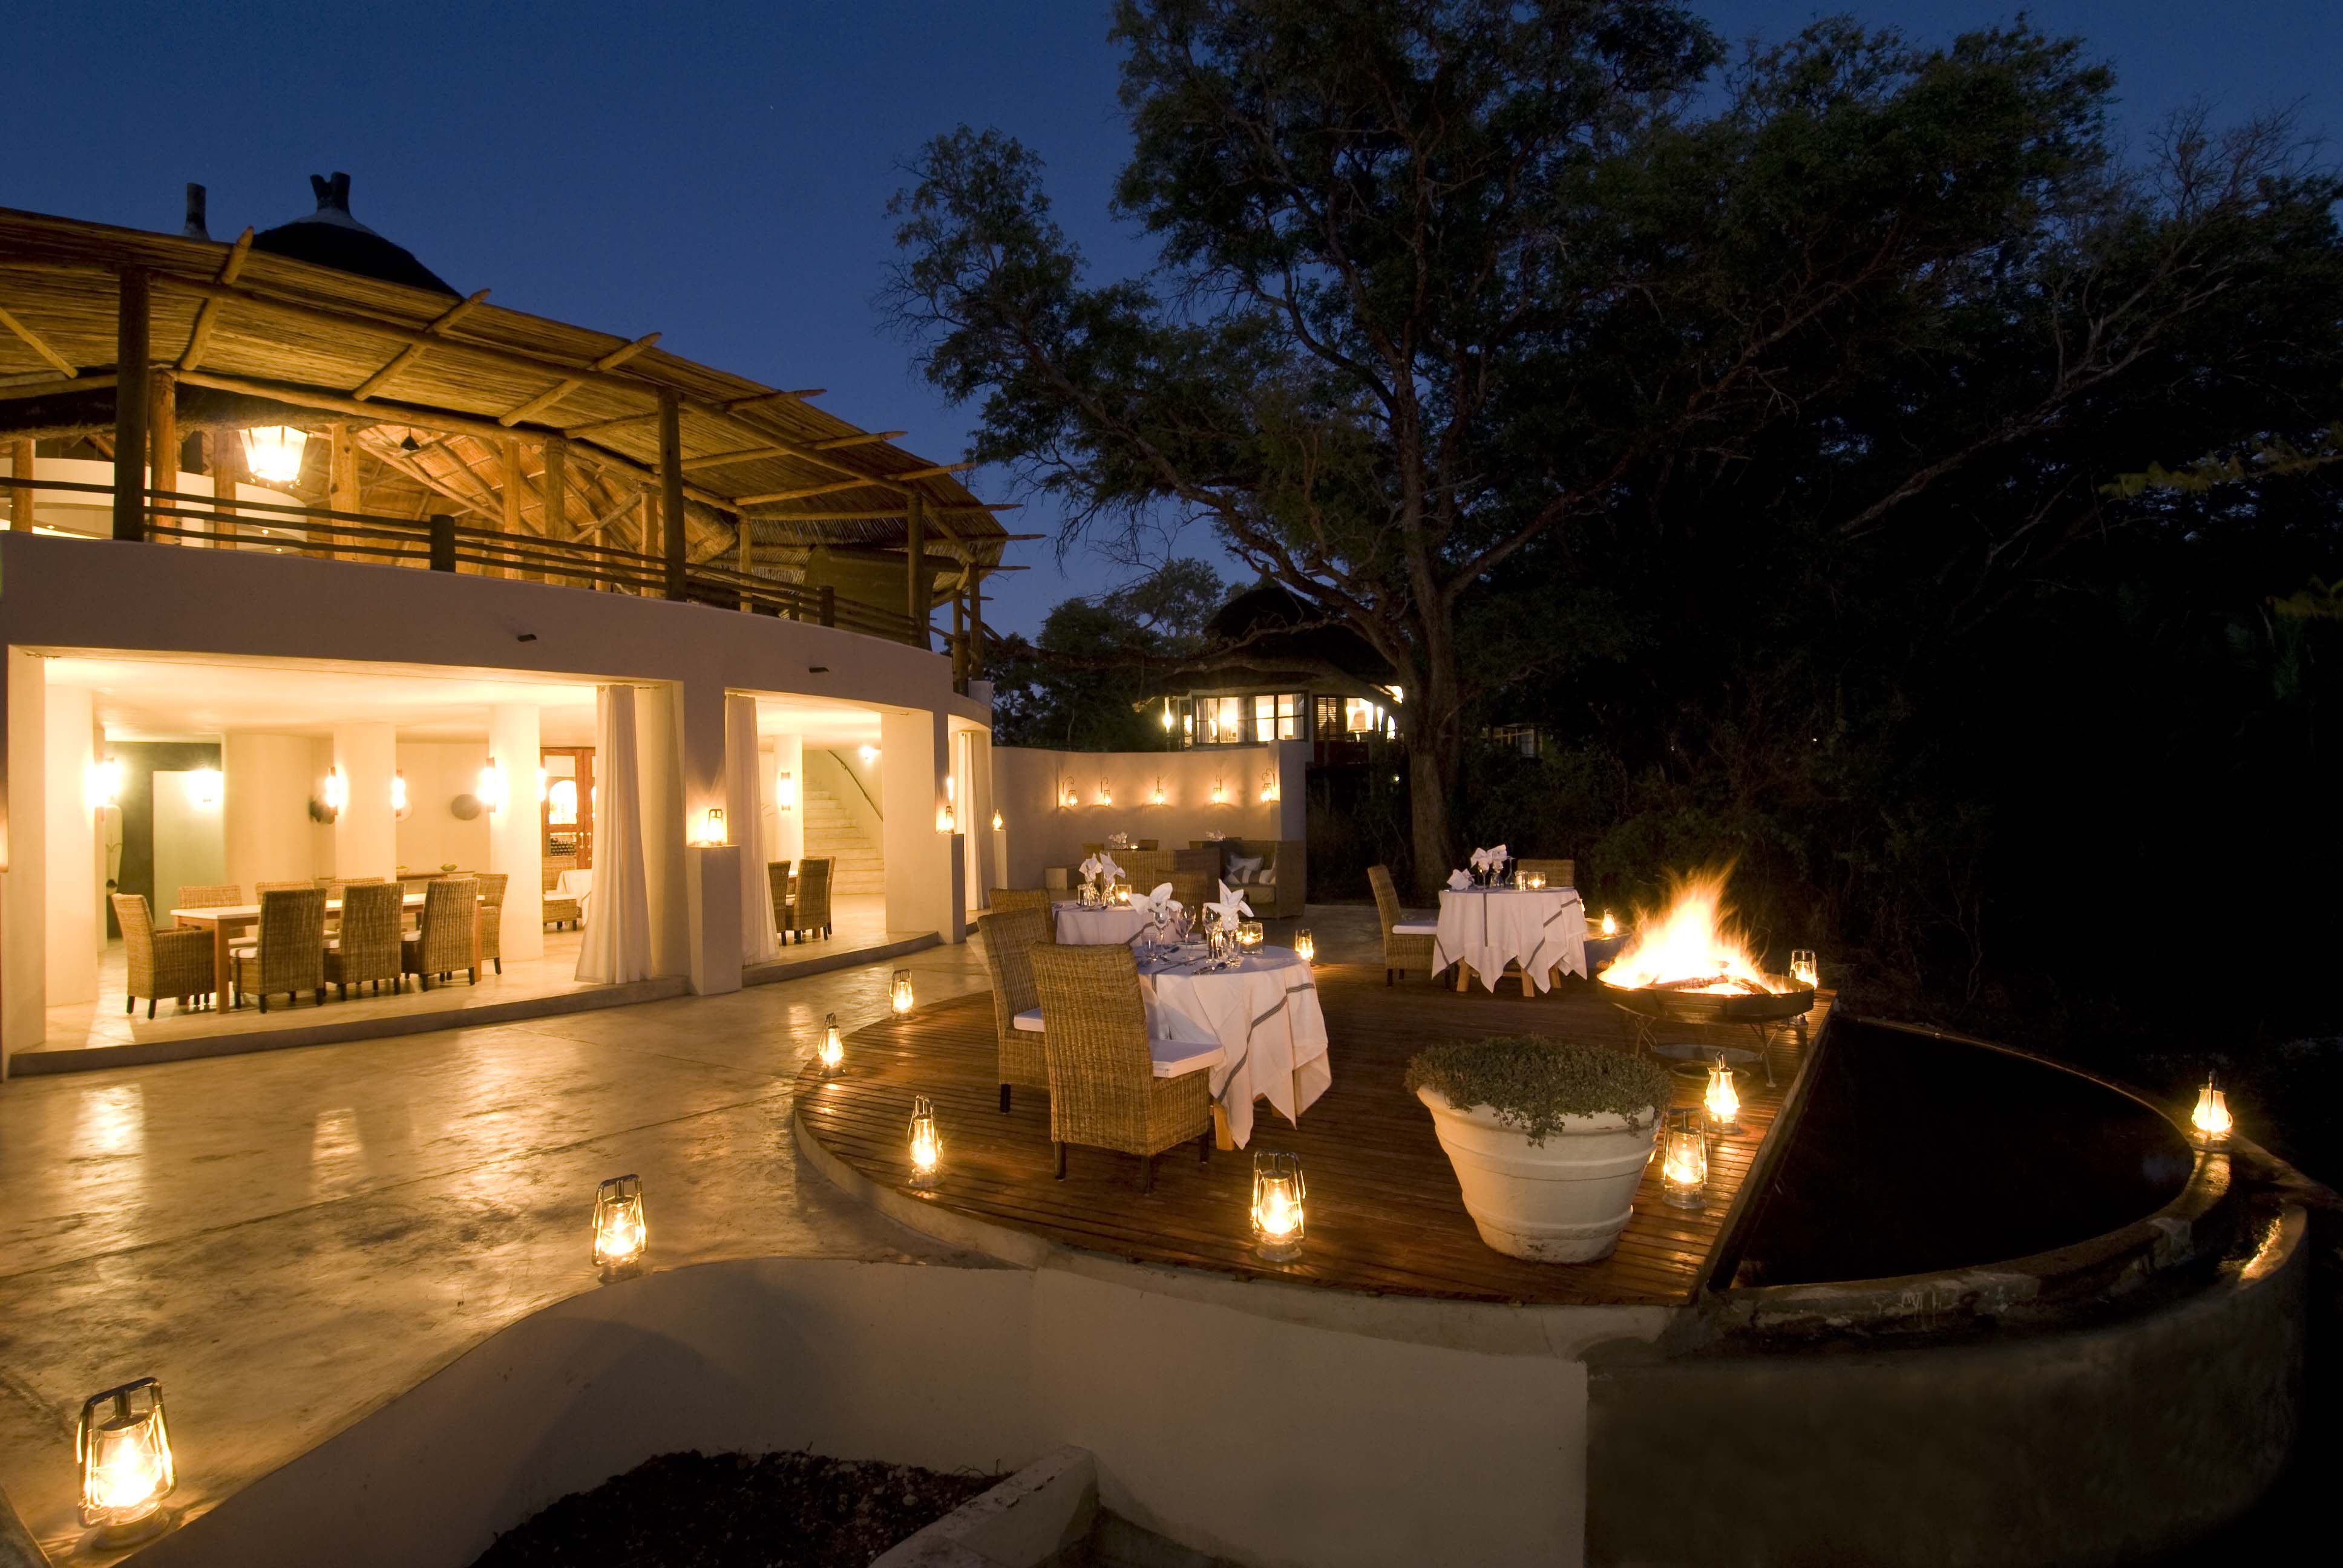 Sanctuary sussi chuma contact details for Sunset lodge